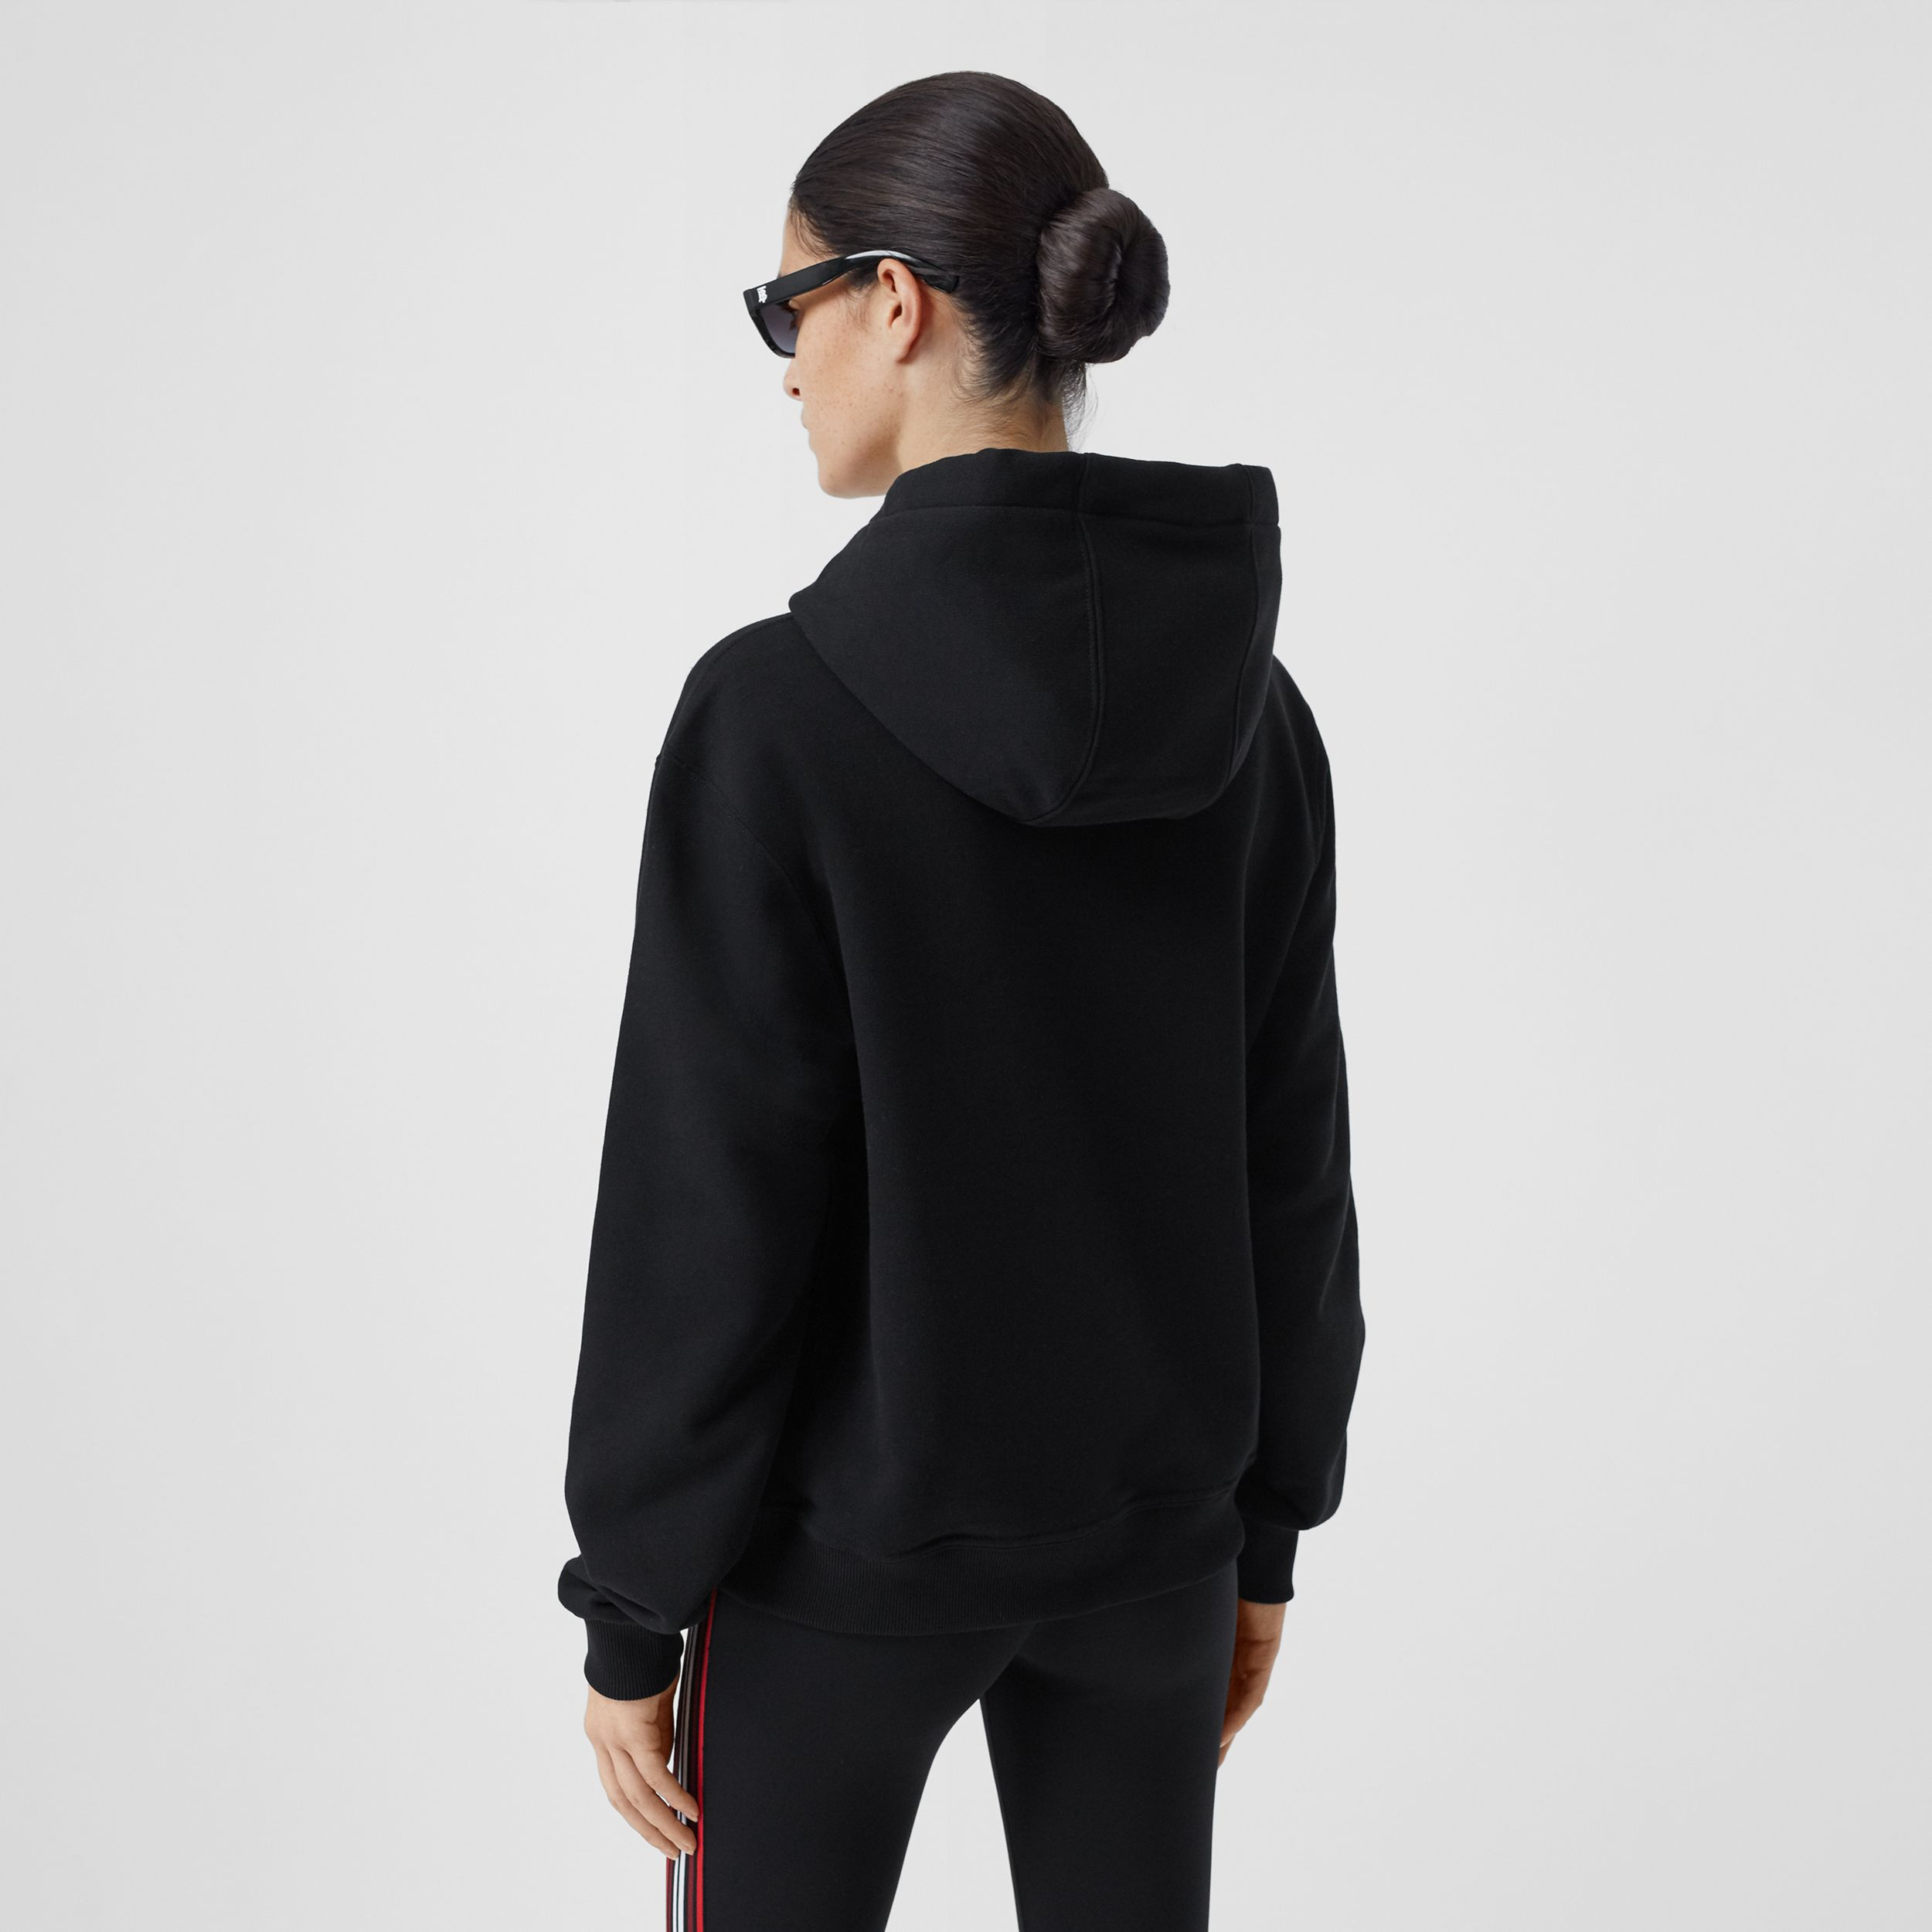 Monogram Motif Cotton Hoodie in Black - Women | Burberry - 3